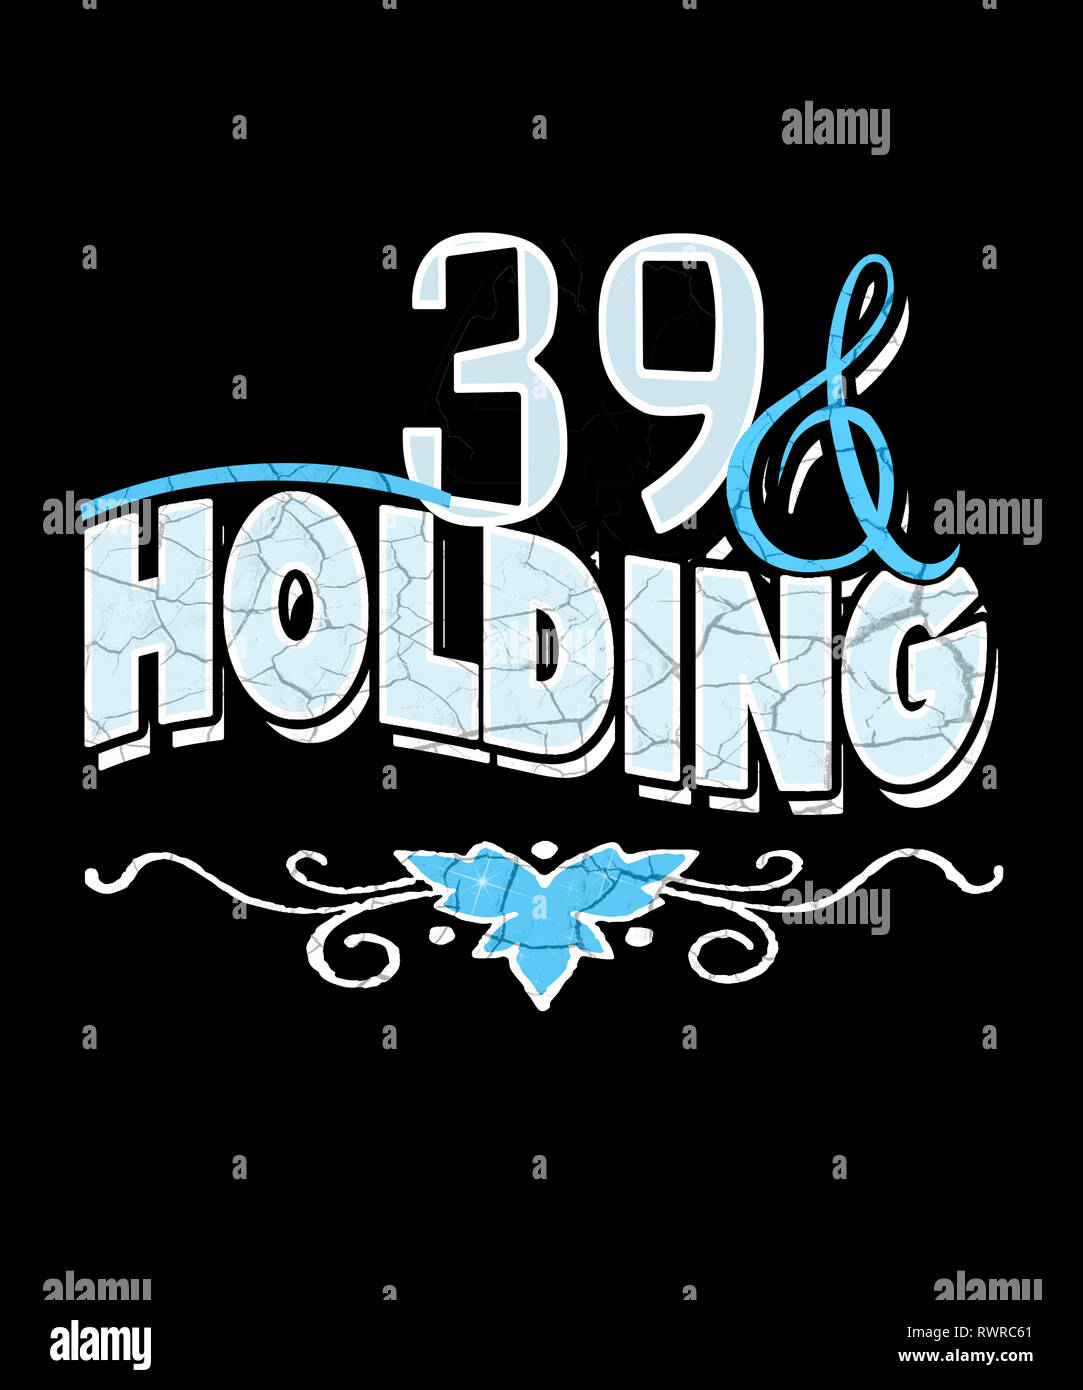 39 and holding graphic with a black background.  Great concept for 39 or 40 year old birthday. - Stock Image